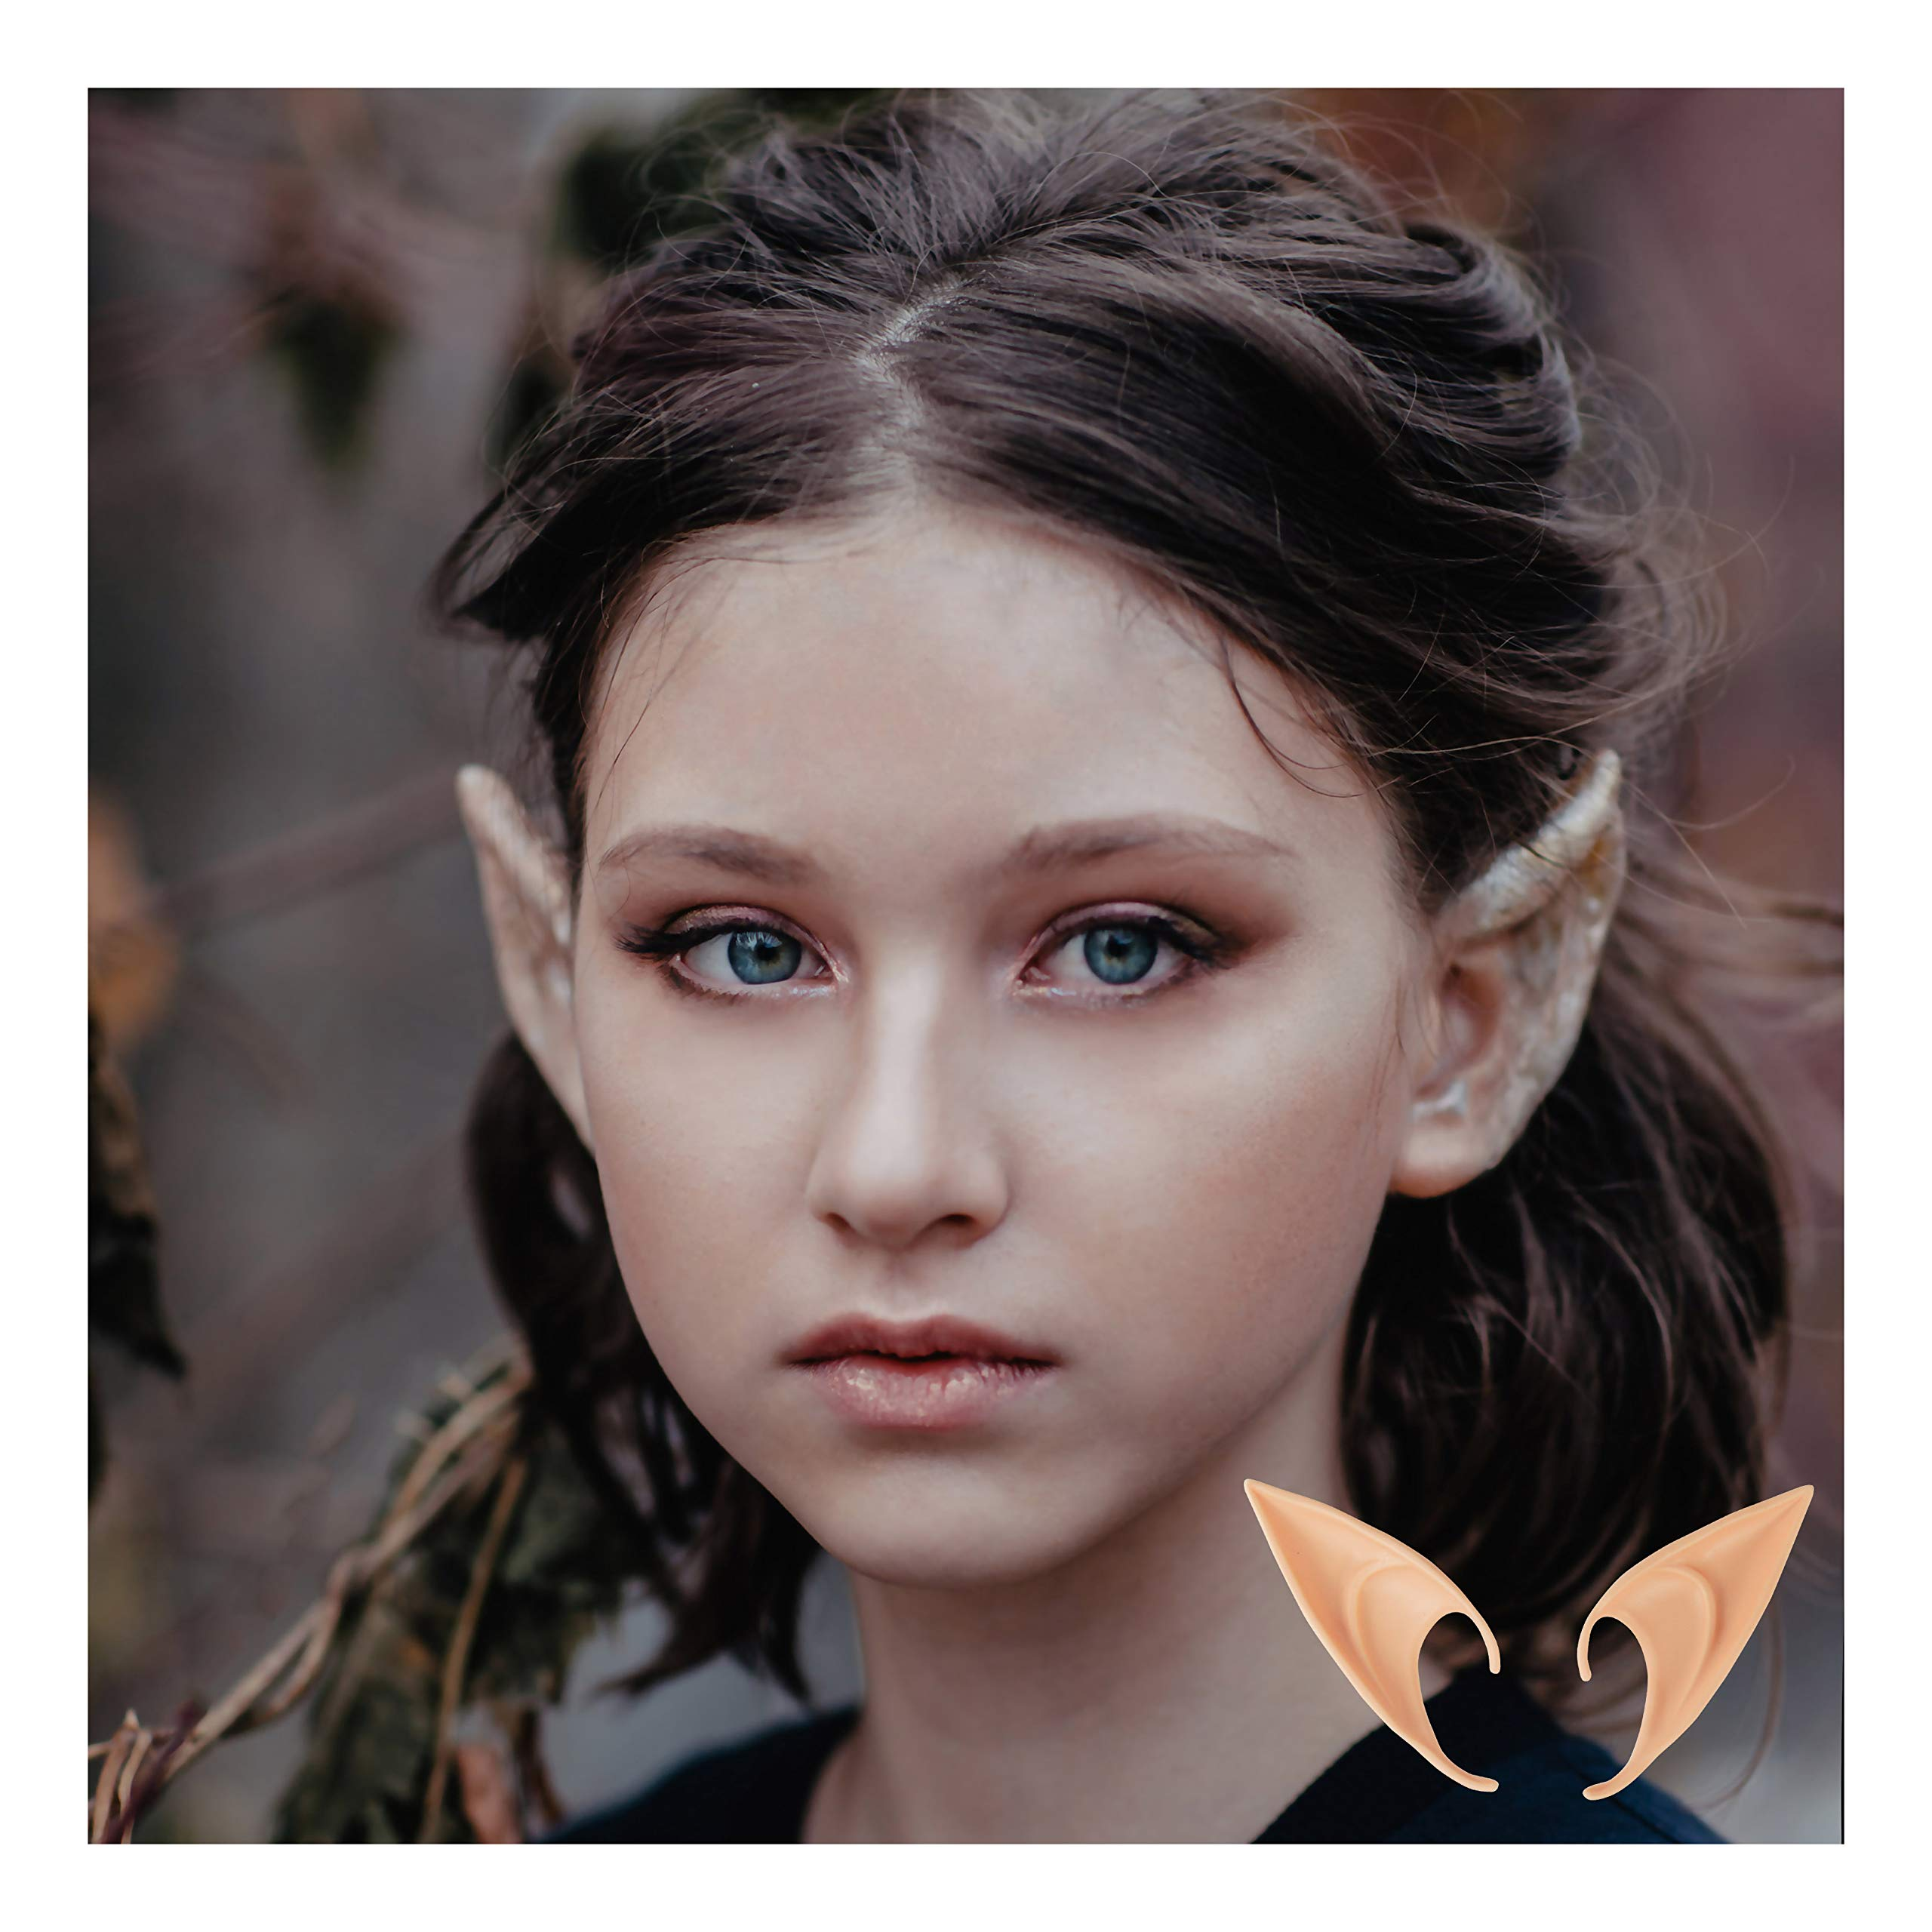 AIYUE 2 Pair Soft Elf Ears Vampire Ears Cosplay Accessories Fairy Pixie Pointed Prosthetic Ear Set by AIYUE